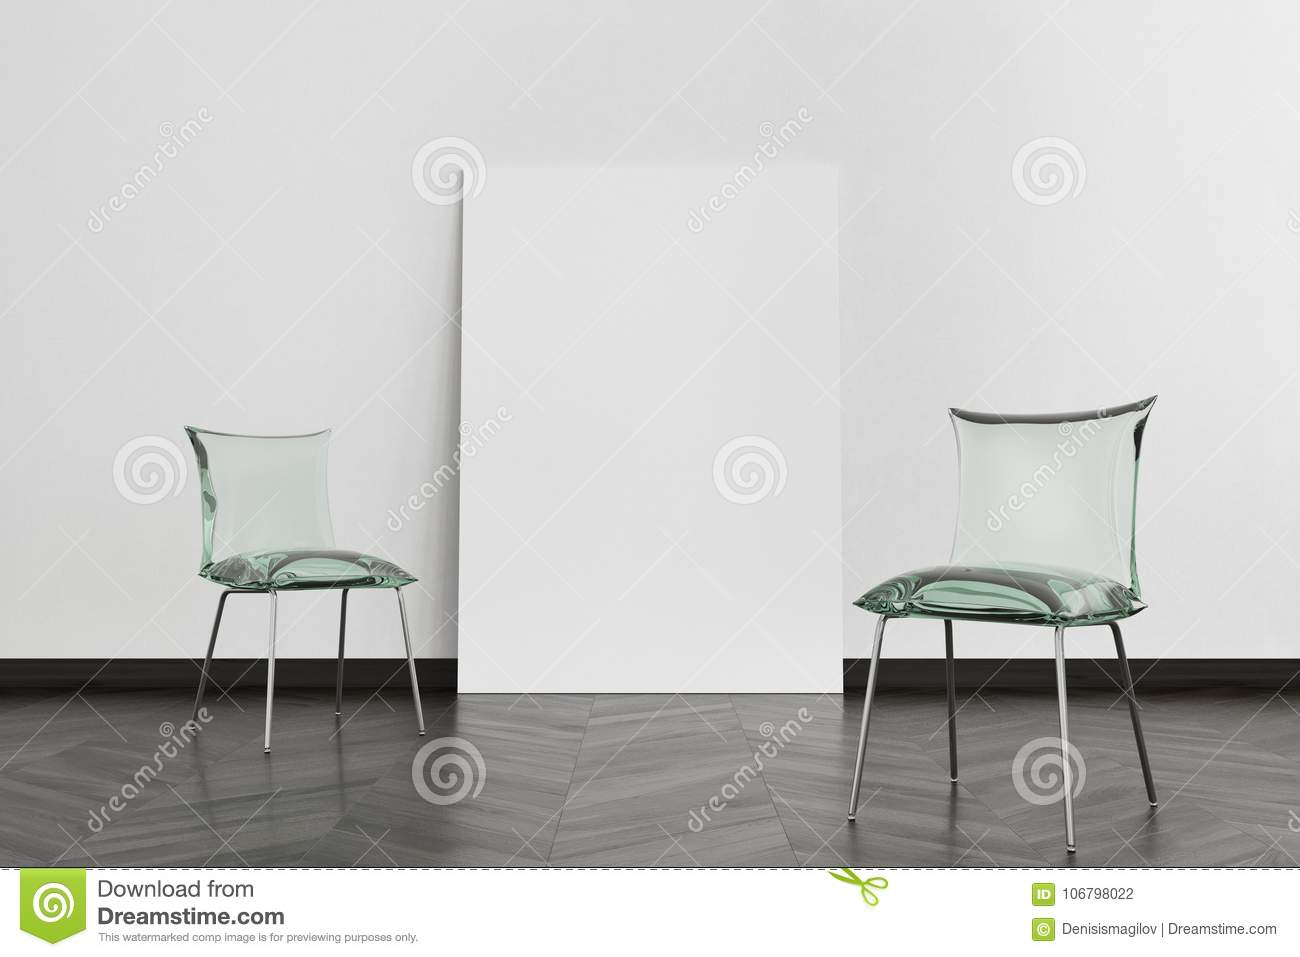 Two Green Glass Chairs, Poster Stock Illustration - Illustration